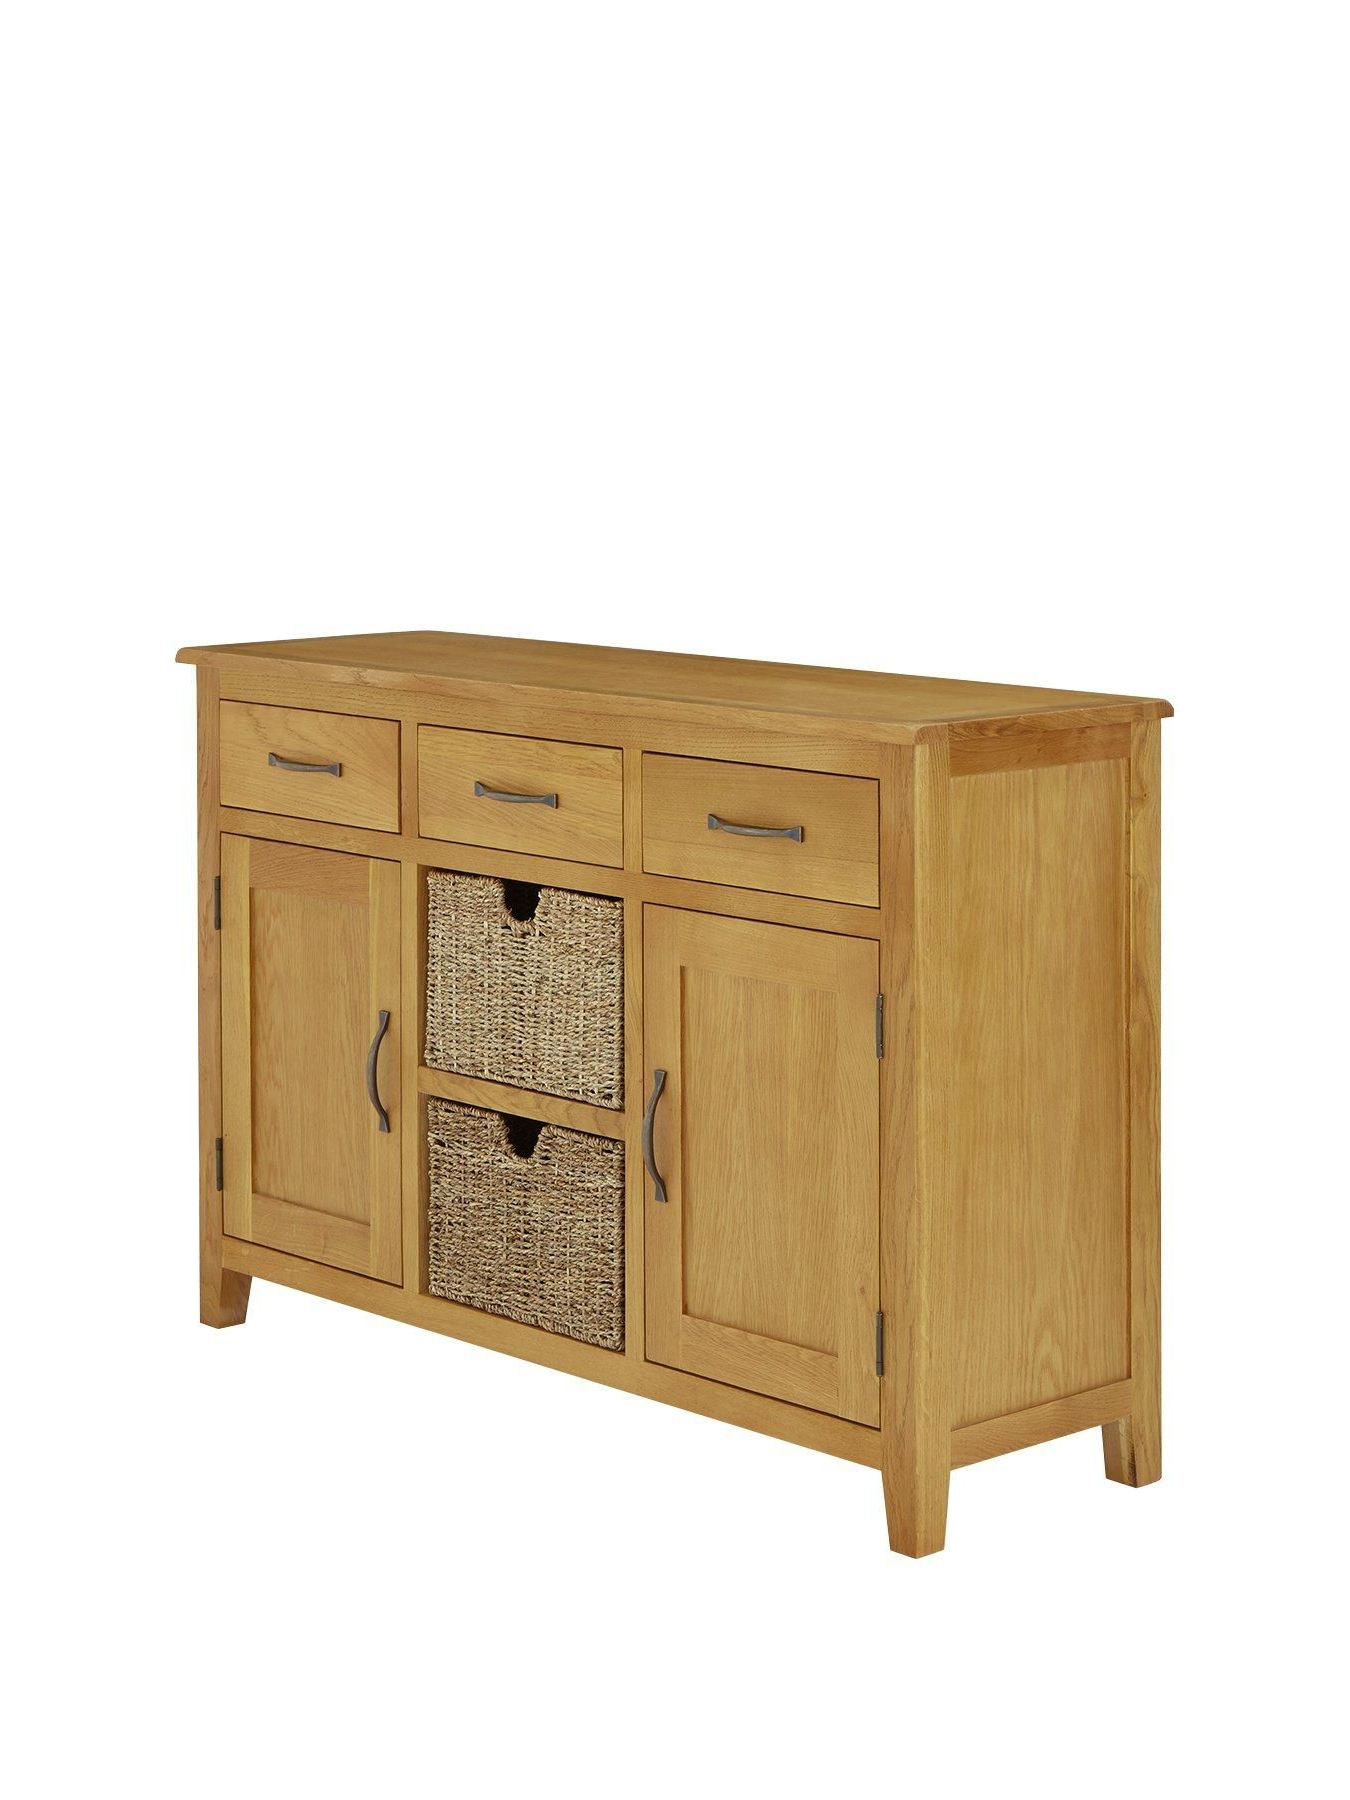 Most Recent Luxe Collection London Seagrass Oak Ready Assembled Large Sideboard In Natural Oak Wood 2 Door Sideboards (View 11 of 20)